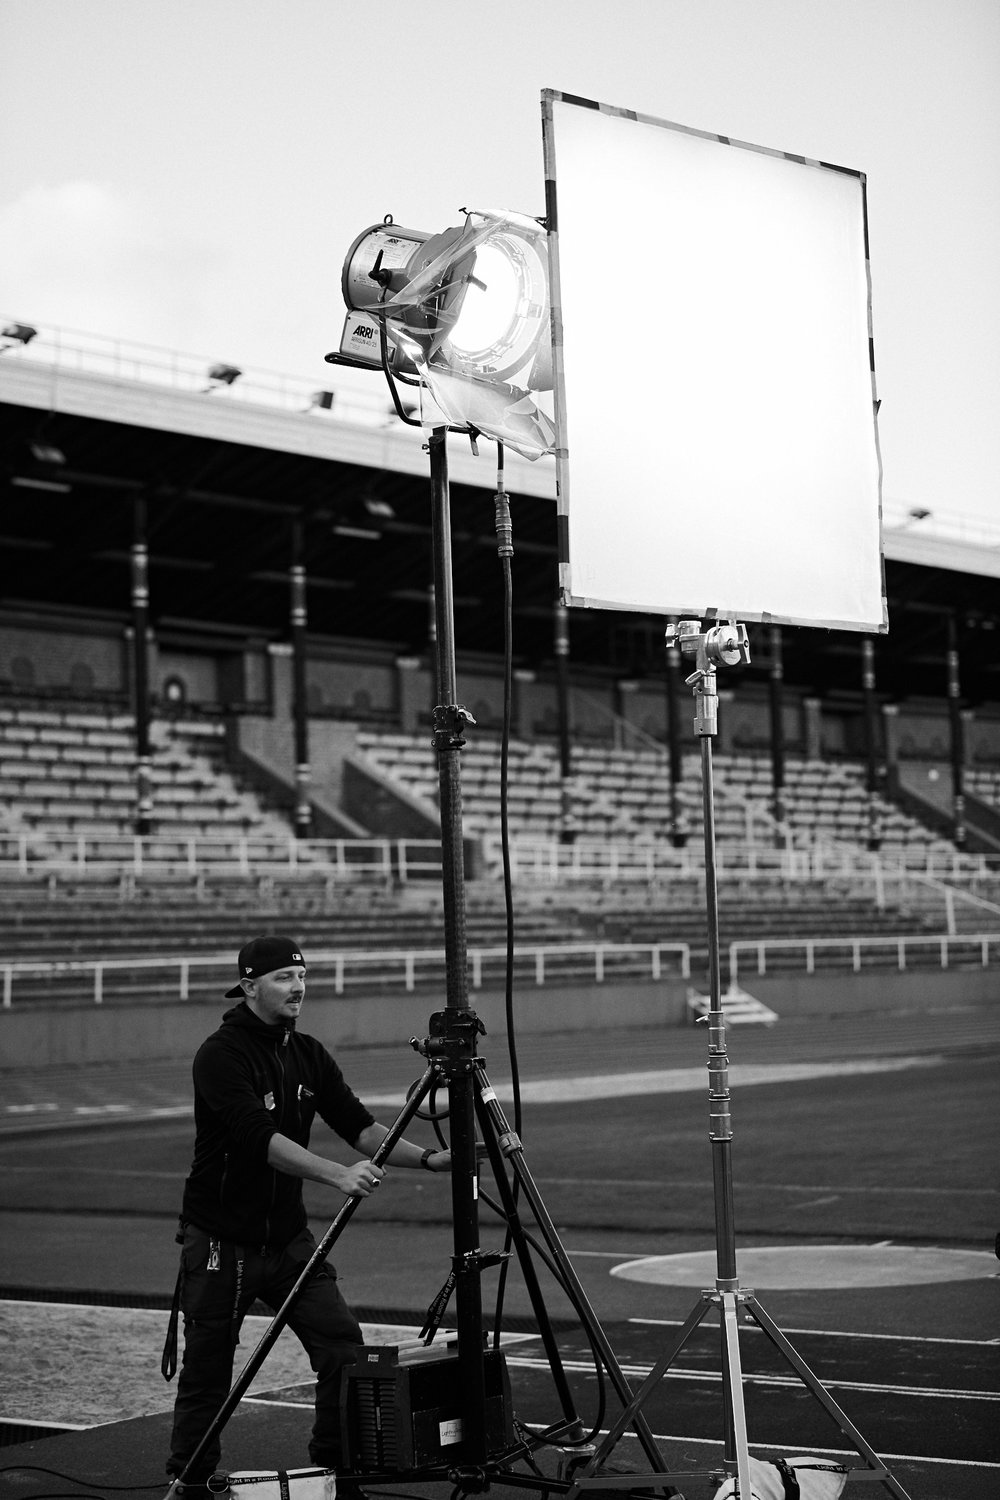 BTS_Porudction_20170921__DSC1102_Kristofer Samuelsson Photography.jpg